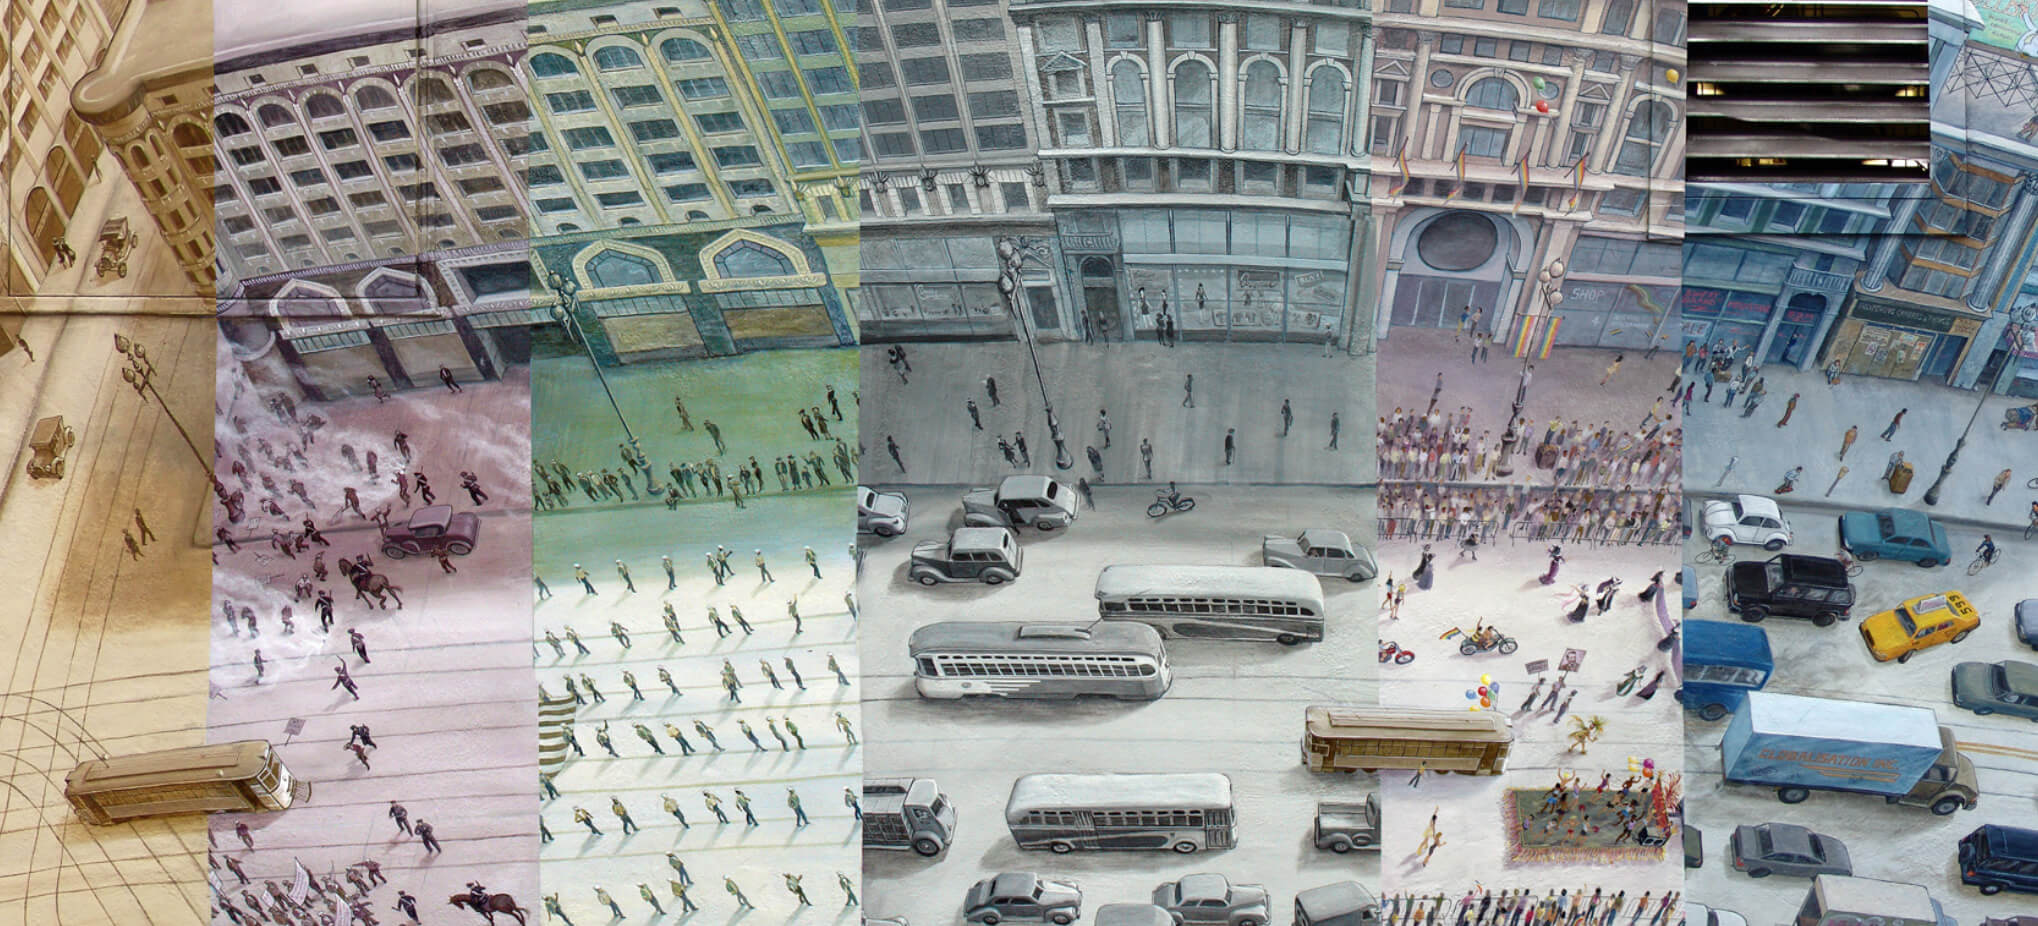 View of the different panels featured on the Market Street Railway mural